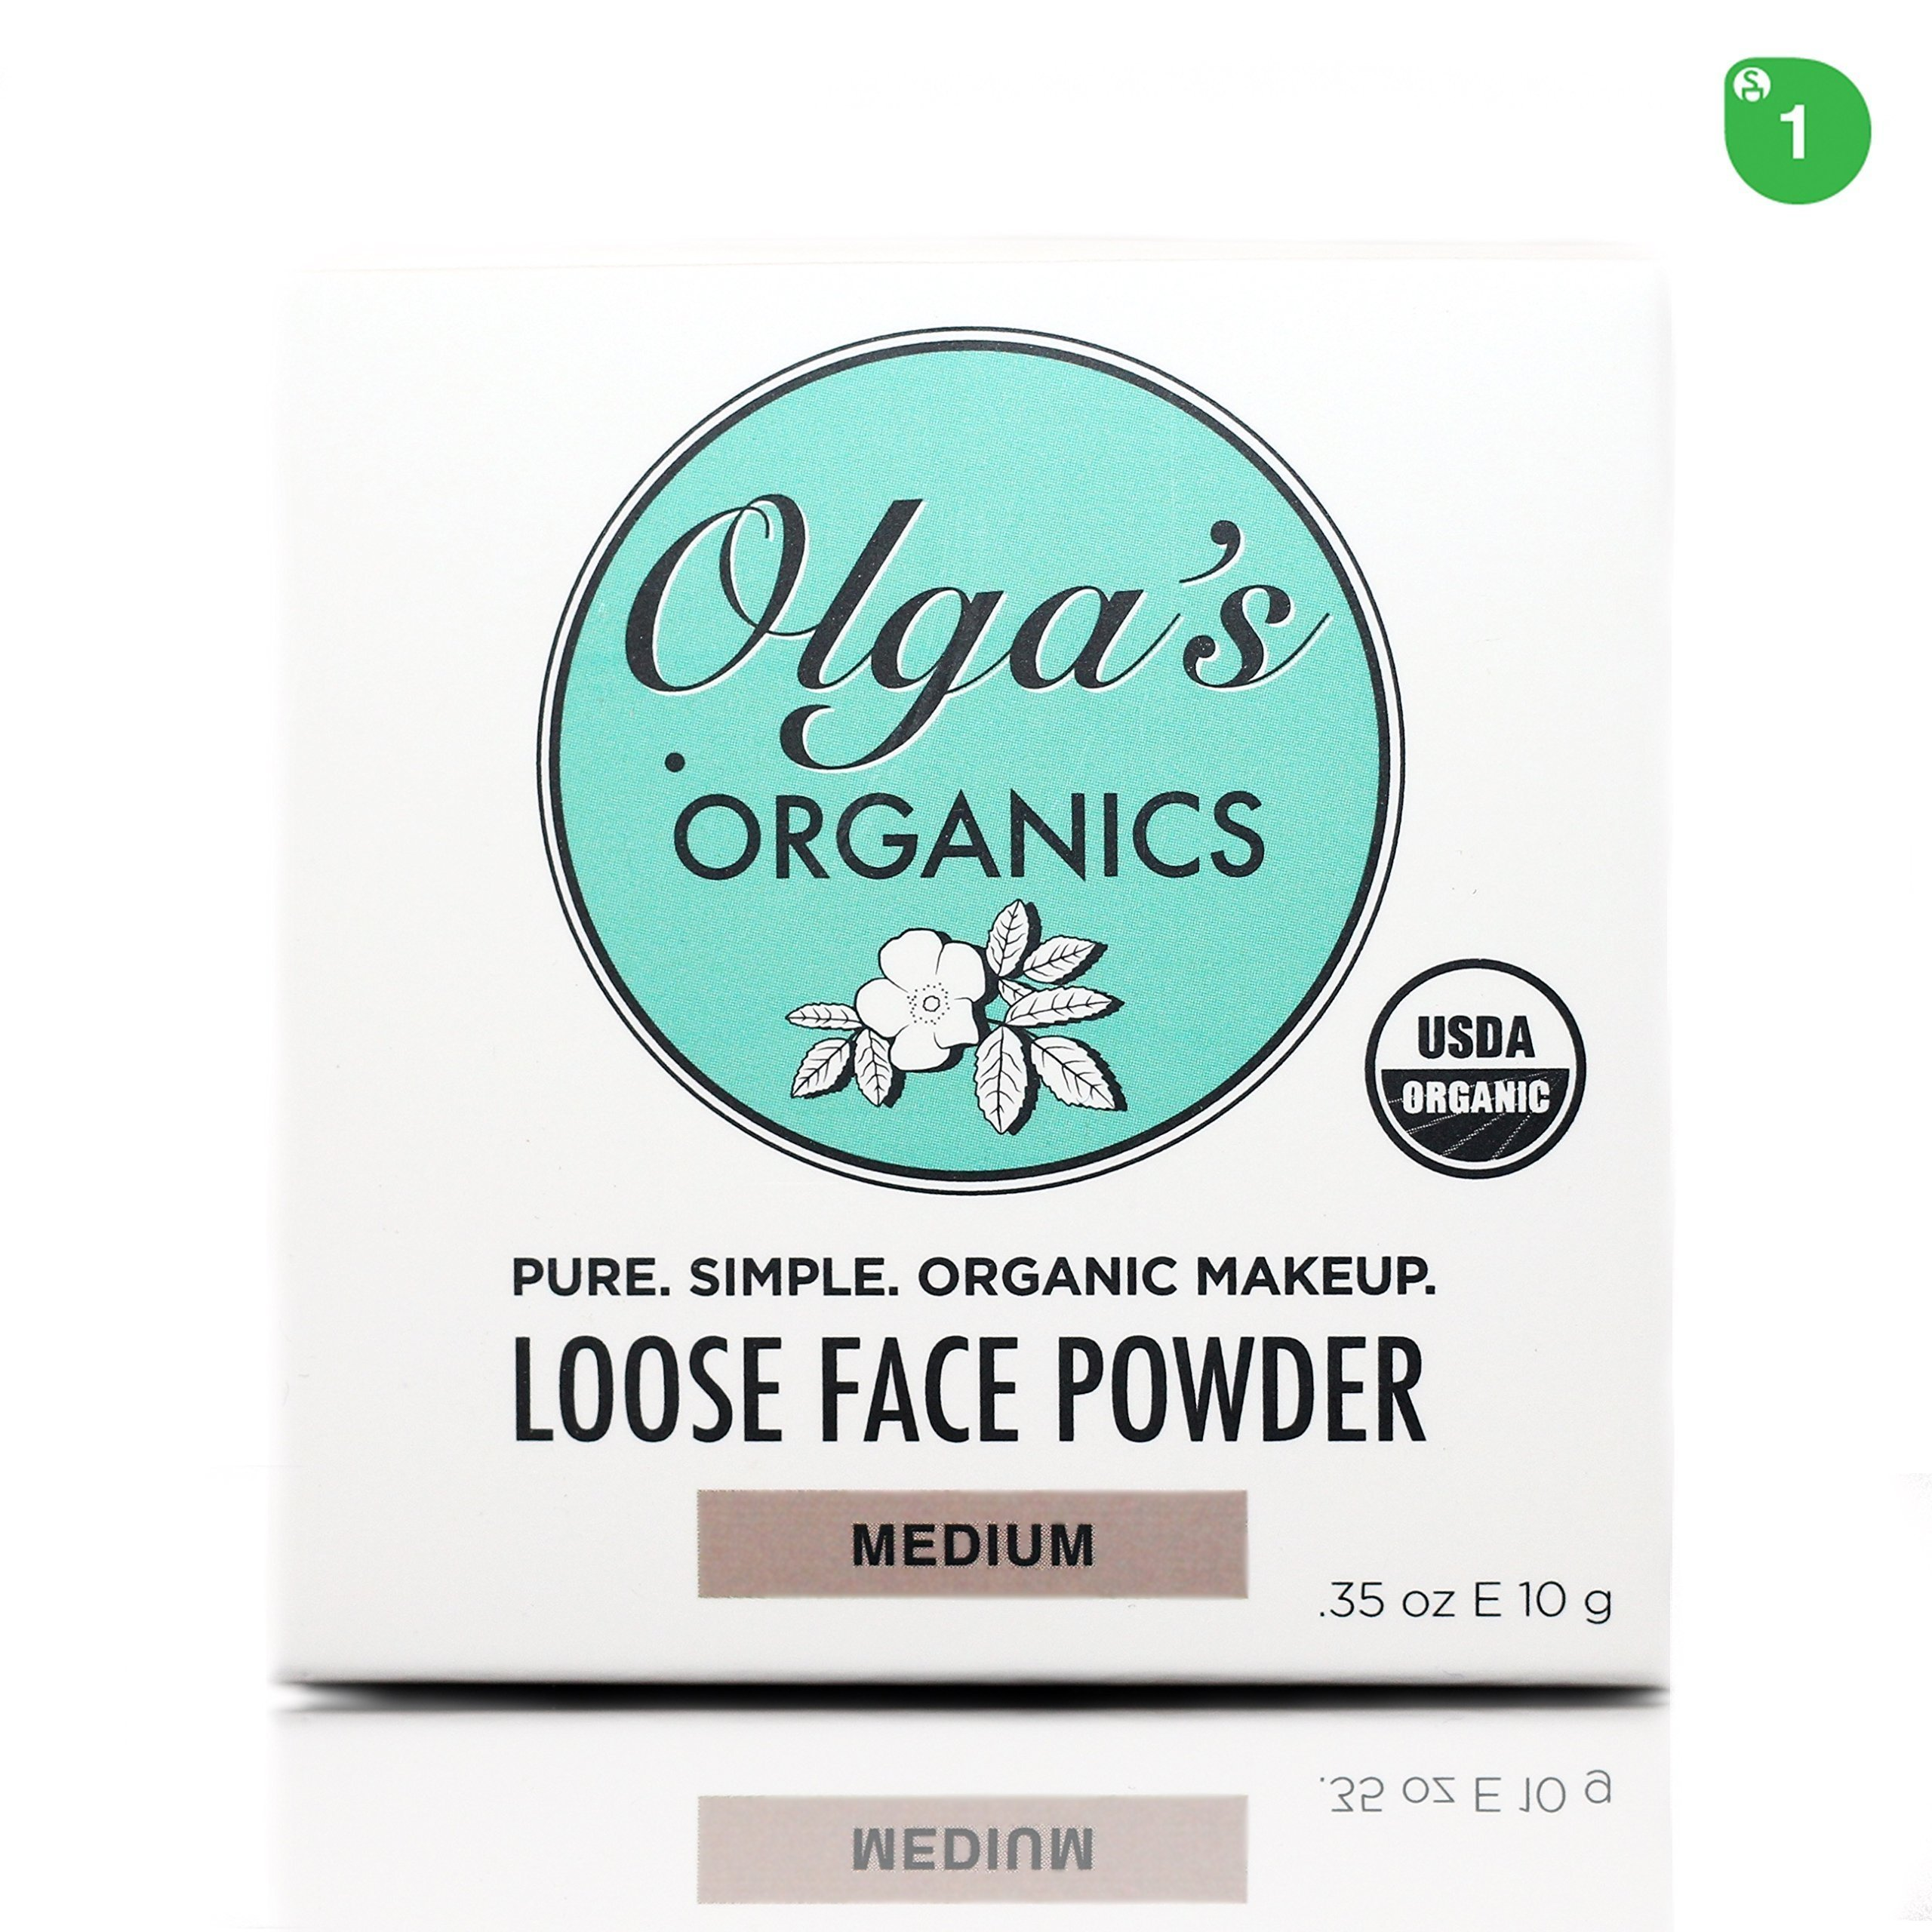 USDA Organic Loose Face Powder - Medium